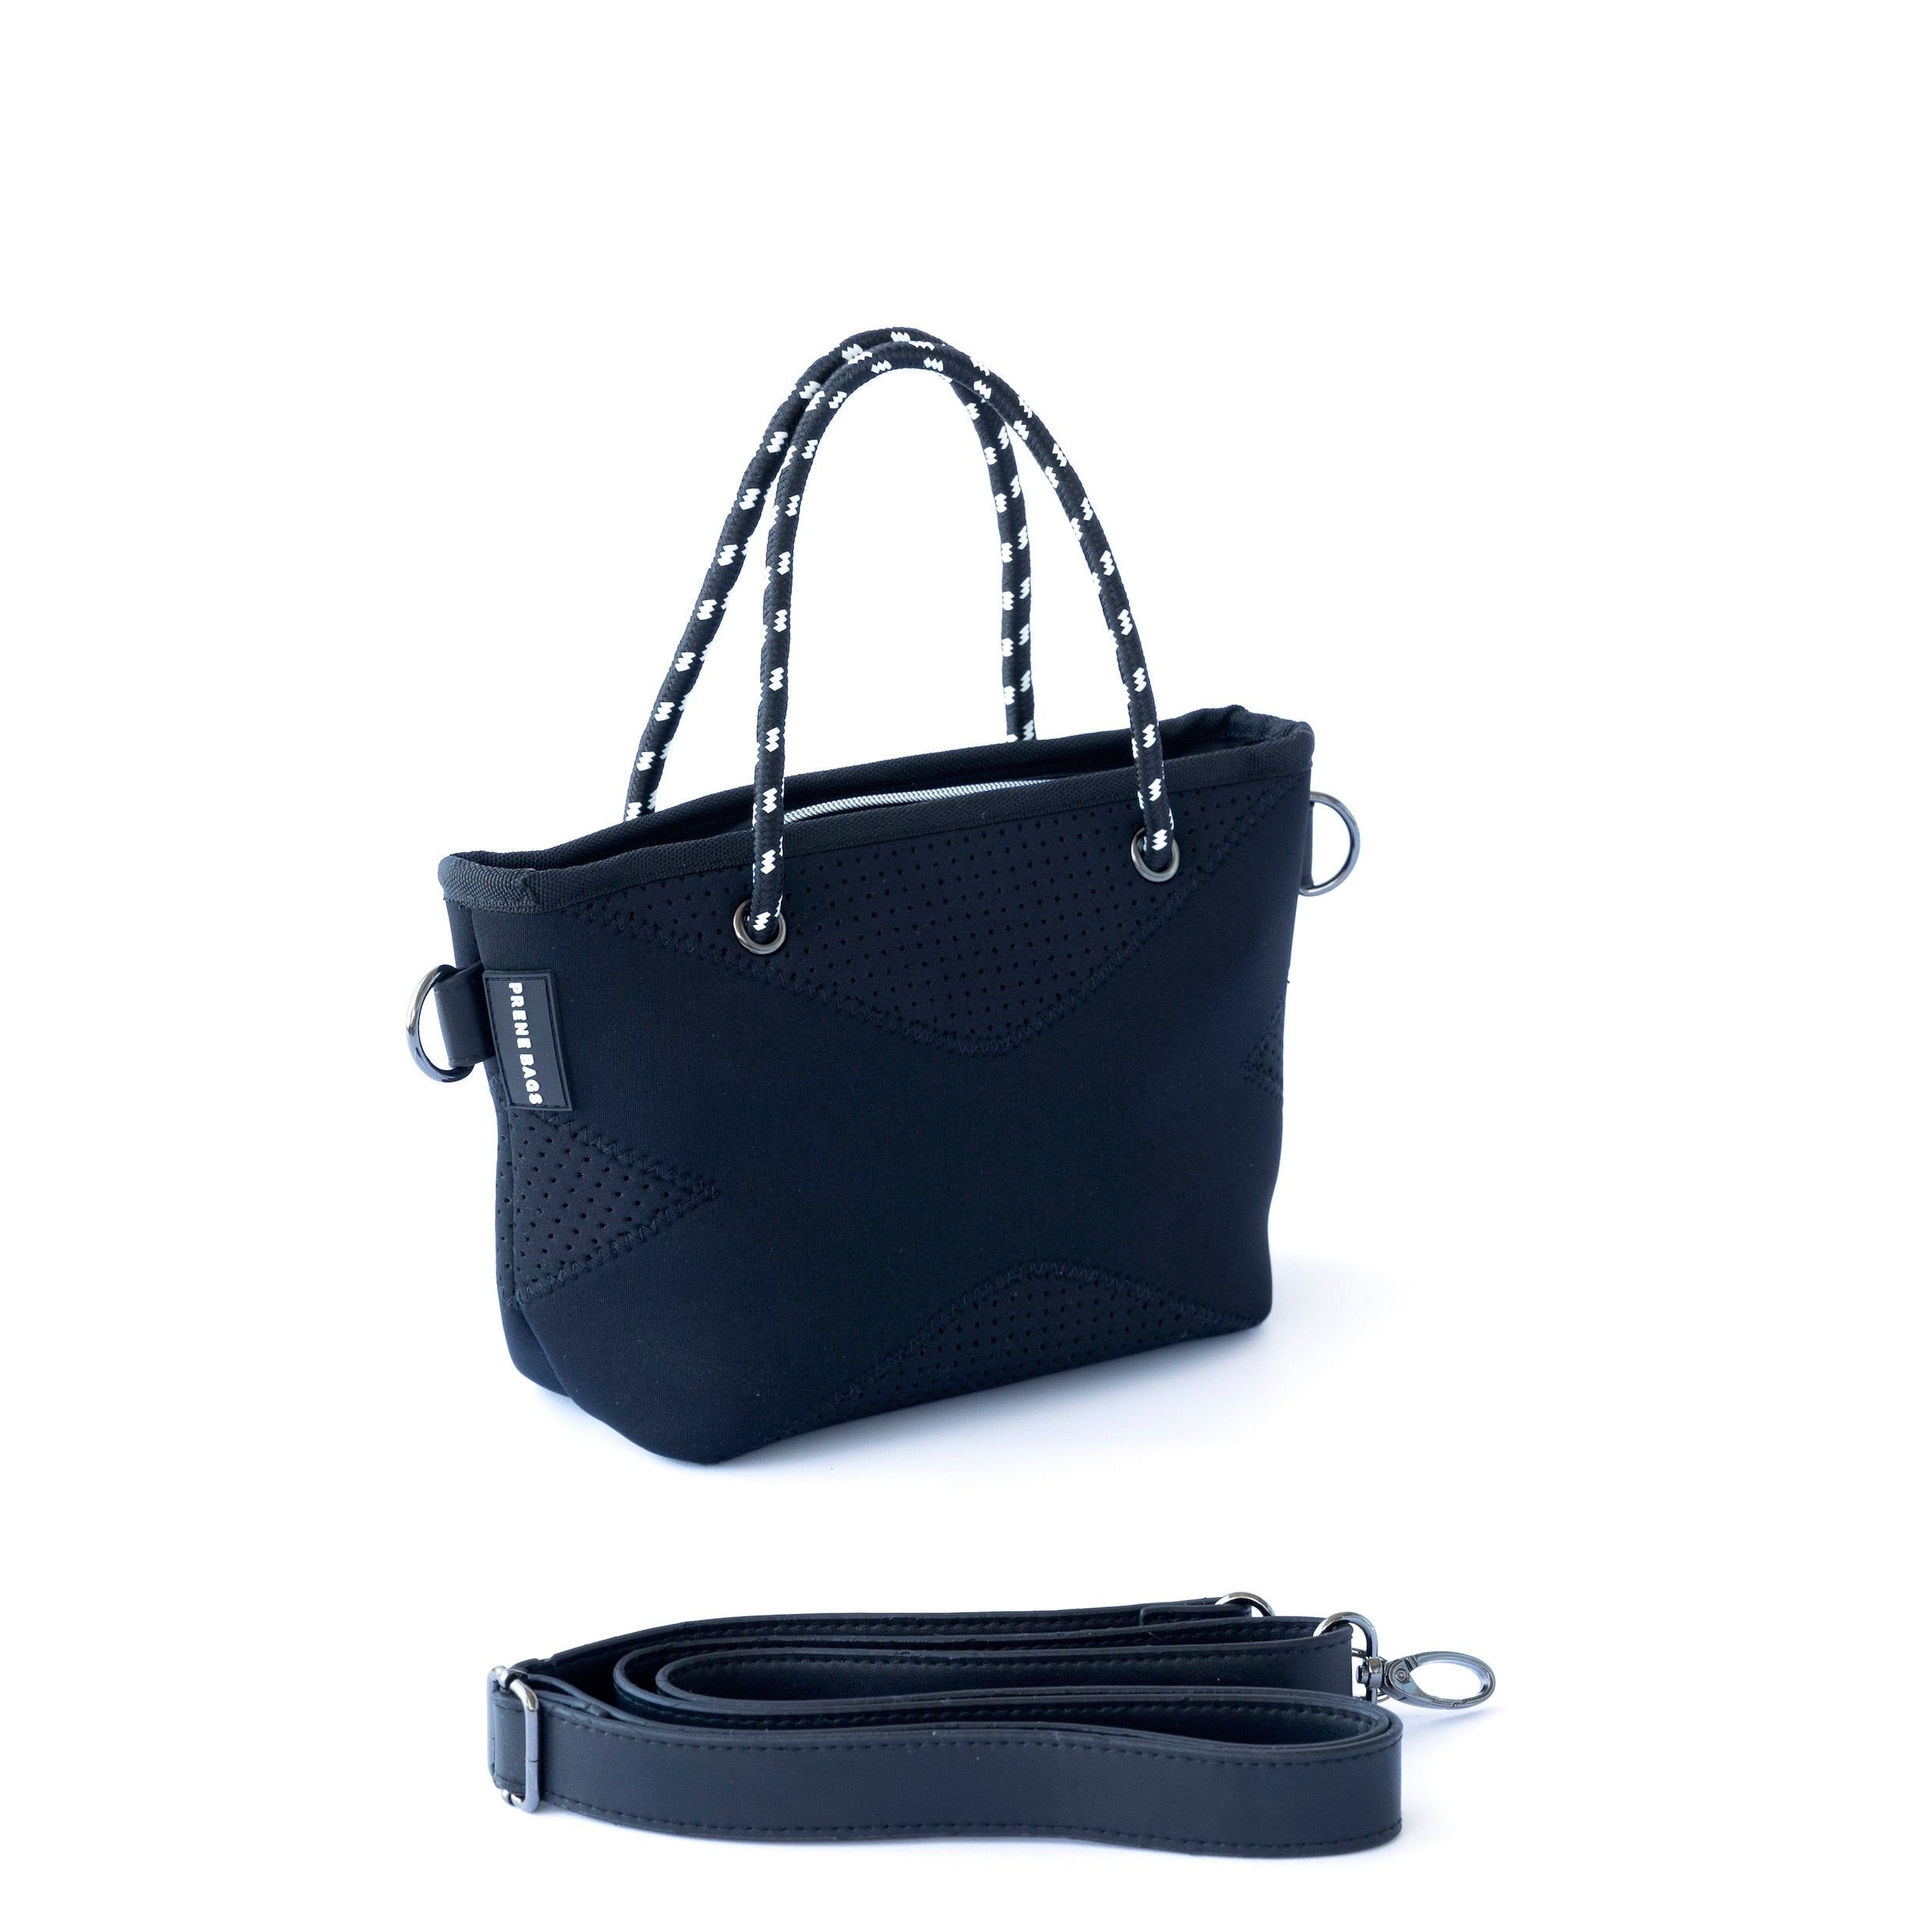 Prene Bags - The XXS Bag - Black